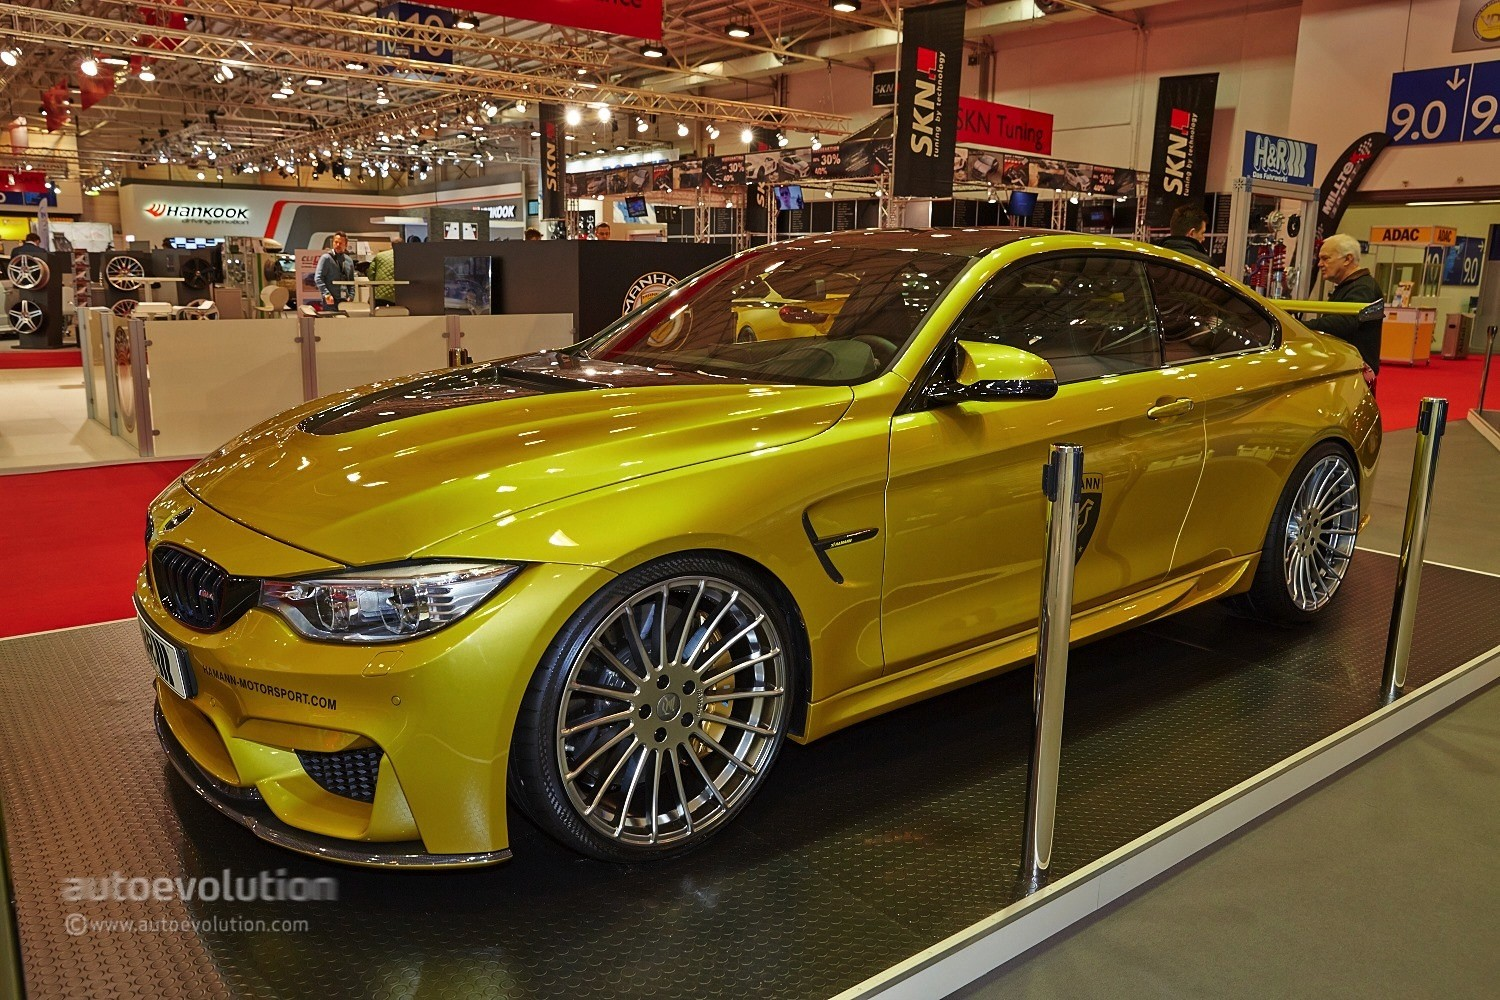 Bmw M4 Gts For Sale >> Hamann Brought Its Winged 517 M4 to the Essen Motor Show ...